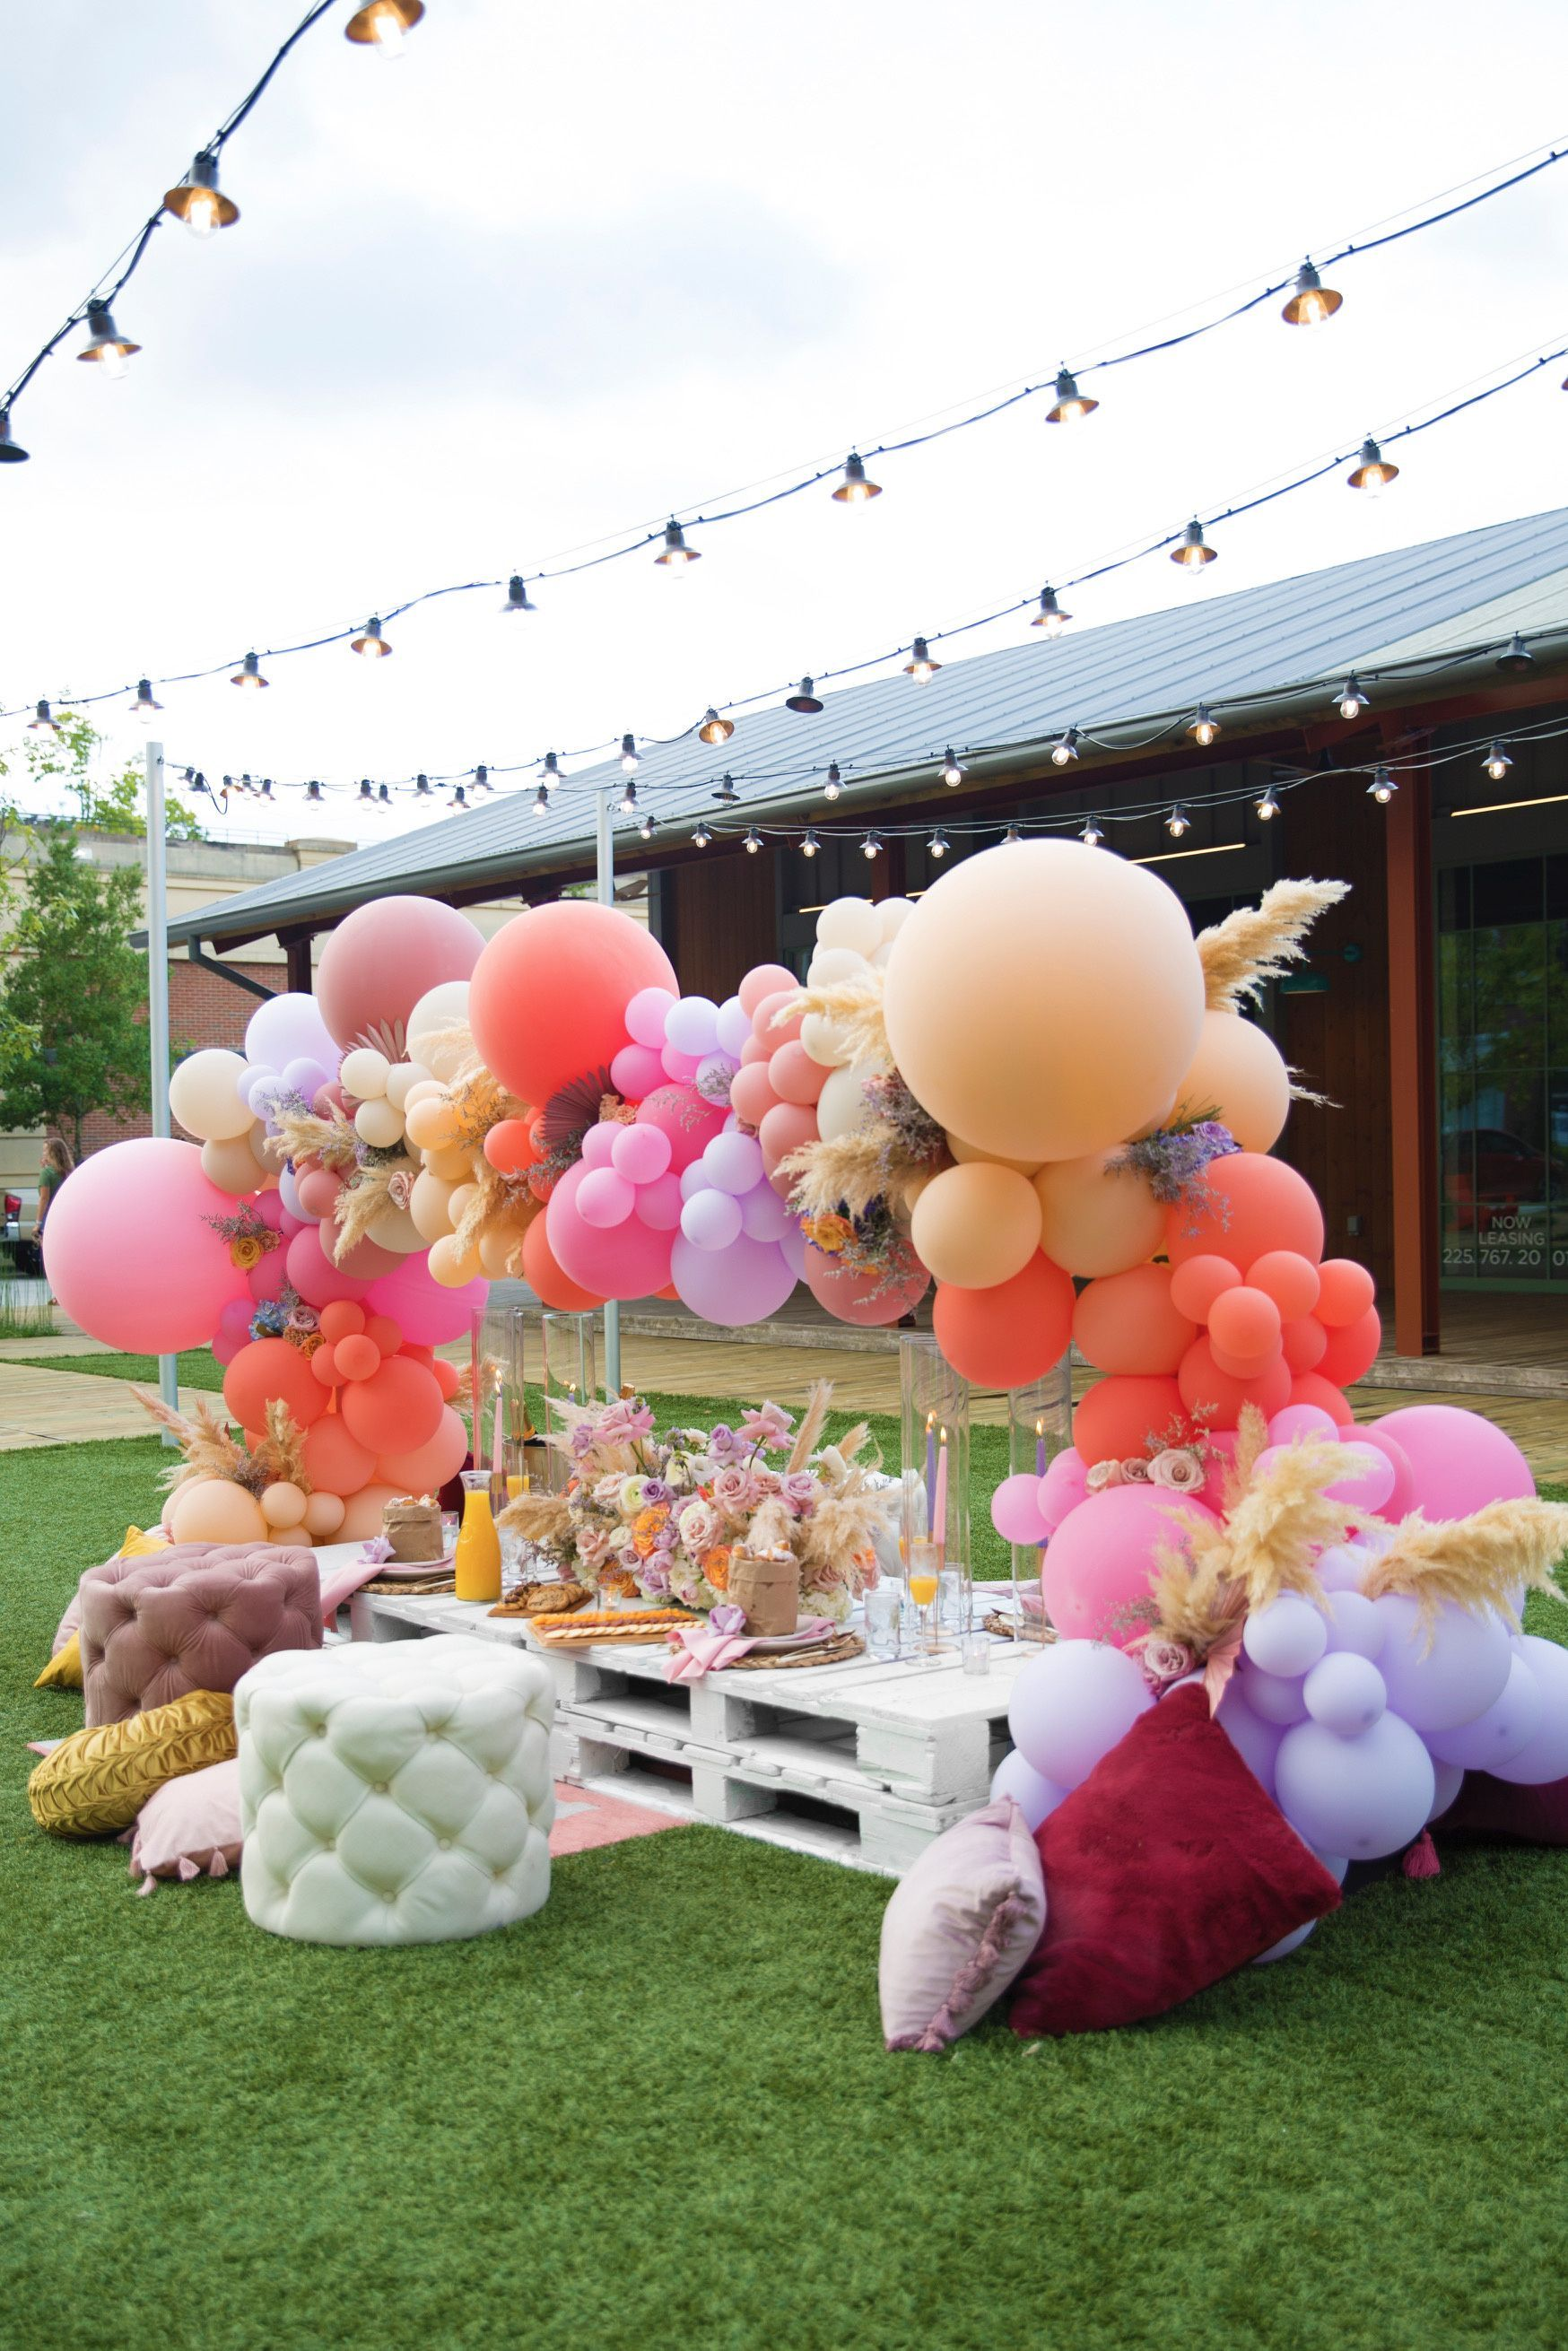 Beignets Balloons W Lovegood Wedding Event Rentals In Baton Rouge Flirty Bridal Shower Picnic In 2020 Picnic Decorations Balloons Outdoor Baby Shower